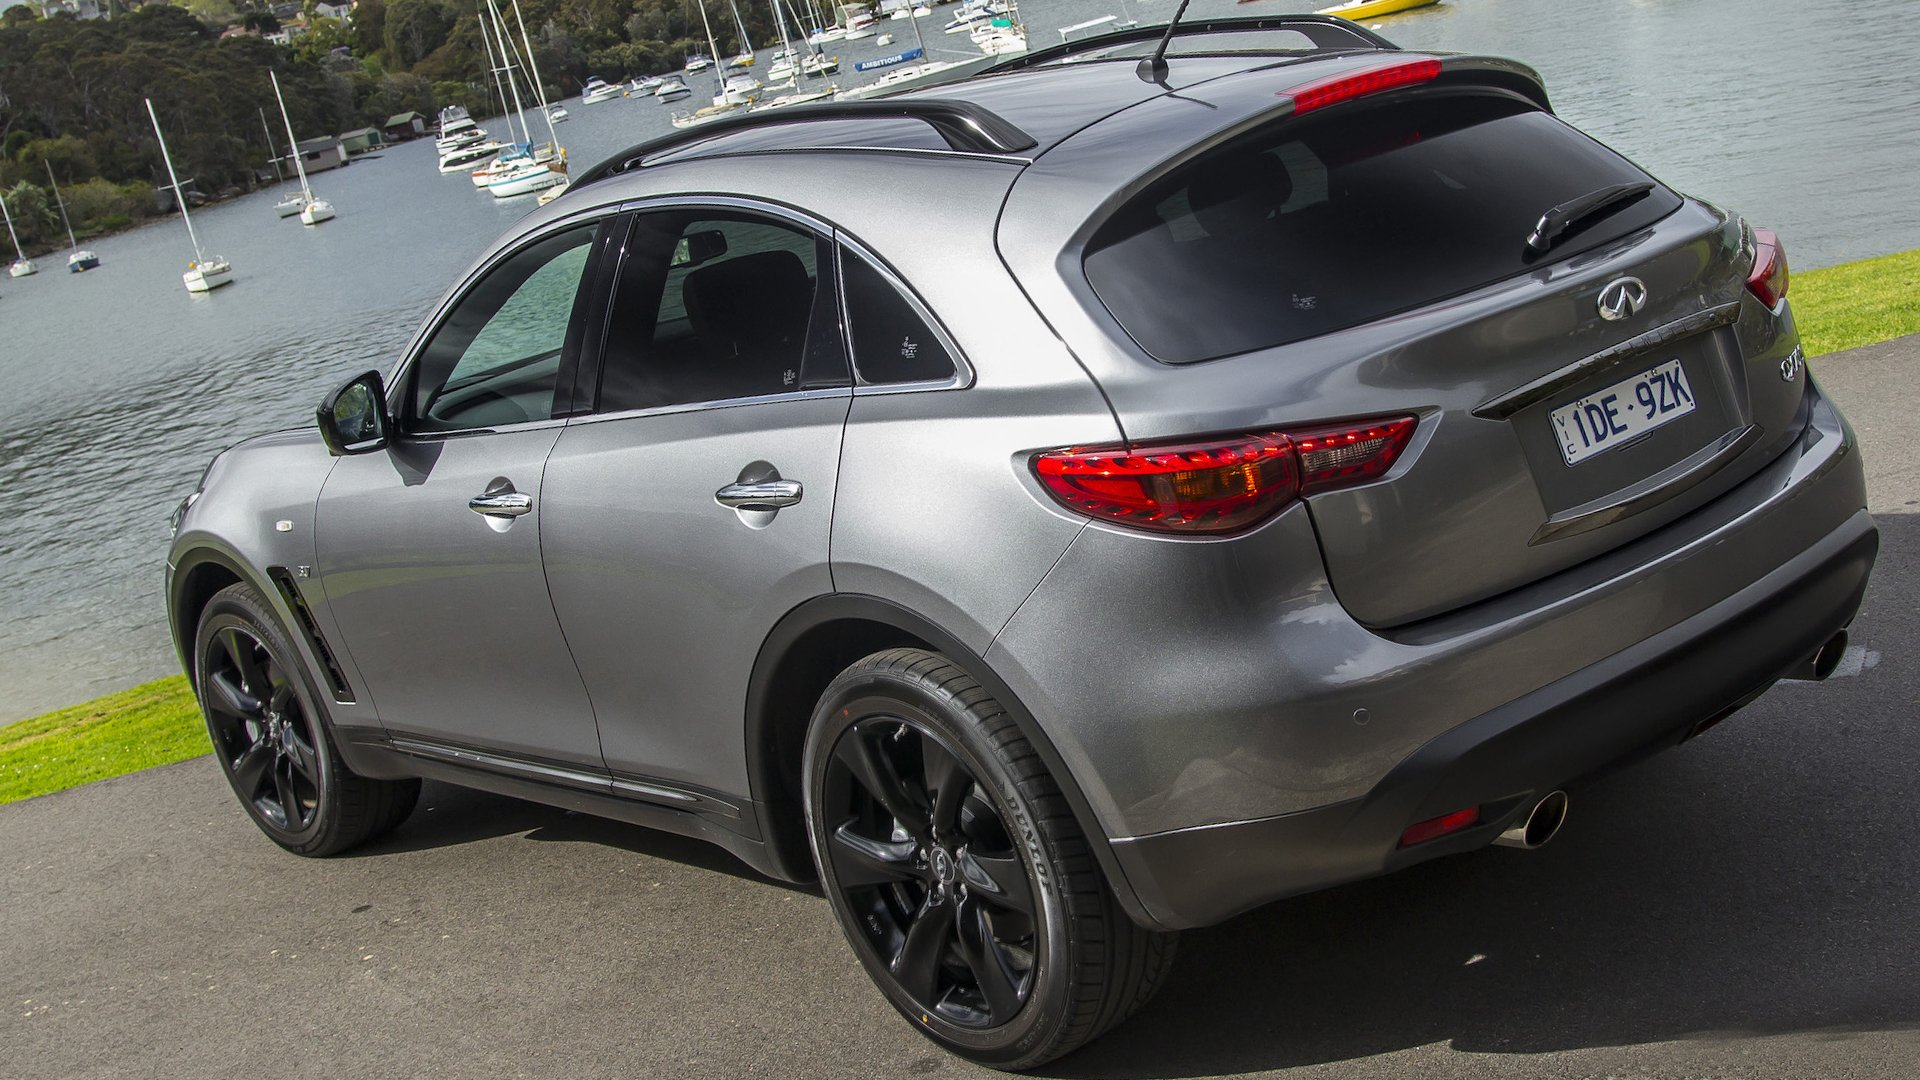 Photo Gallery 2019 Infiniti QX70 HD